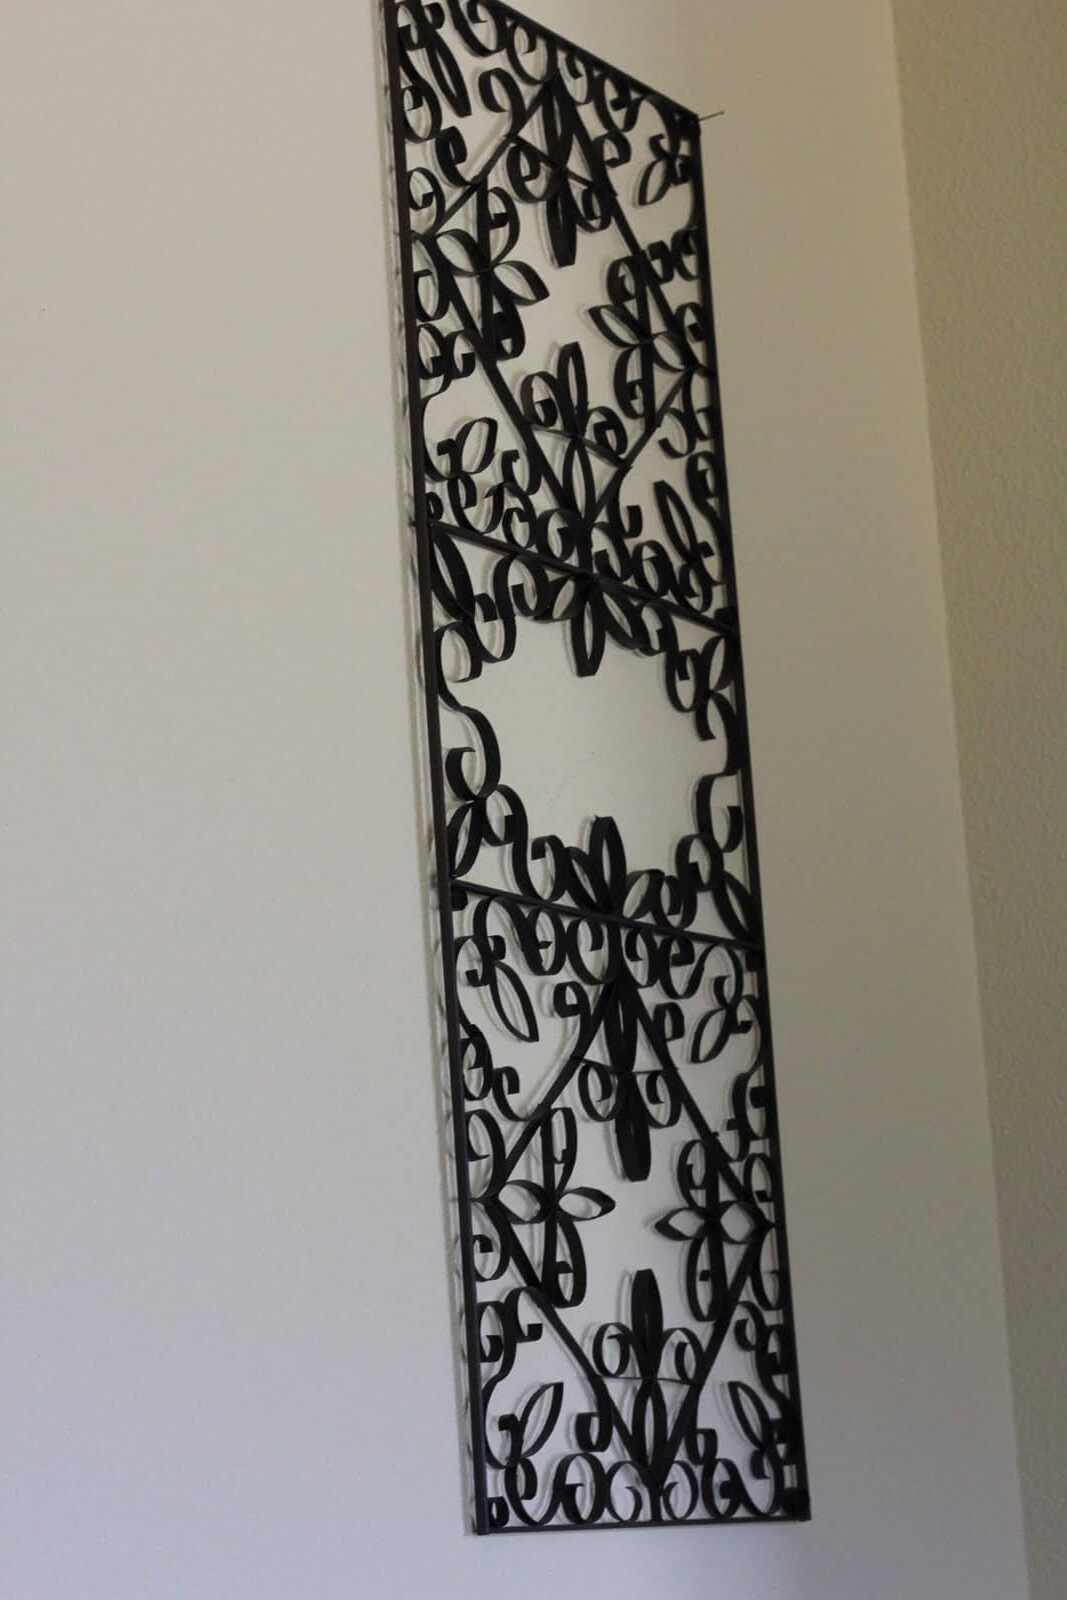 Recent Wall Art Diy Throughout 36 Best Diy Wall Art Ideas (Designs And Decorations) For  (View 10 of 15)